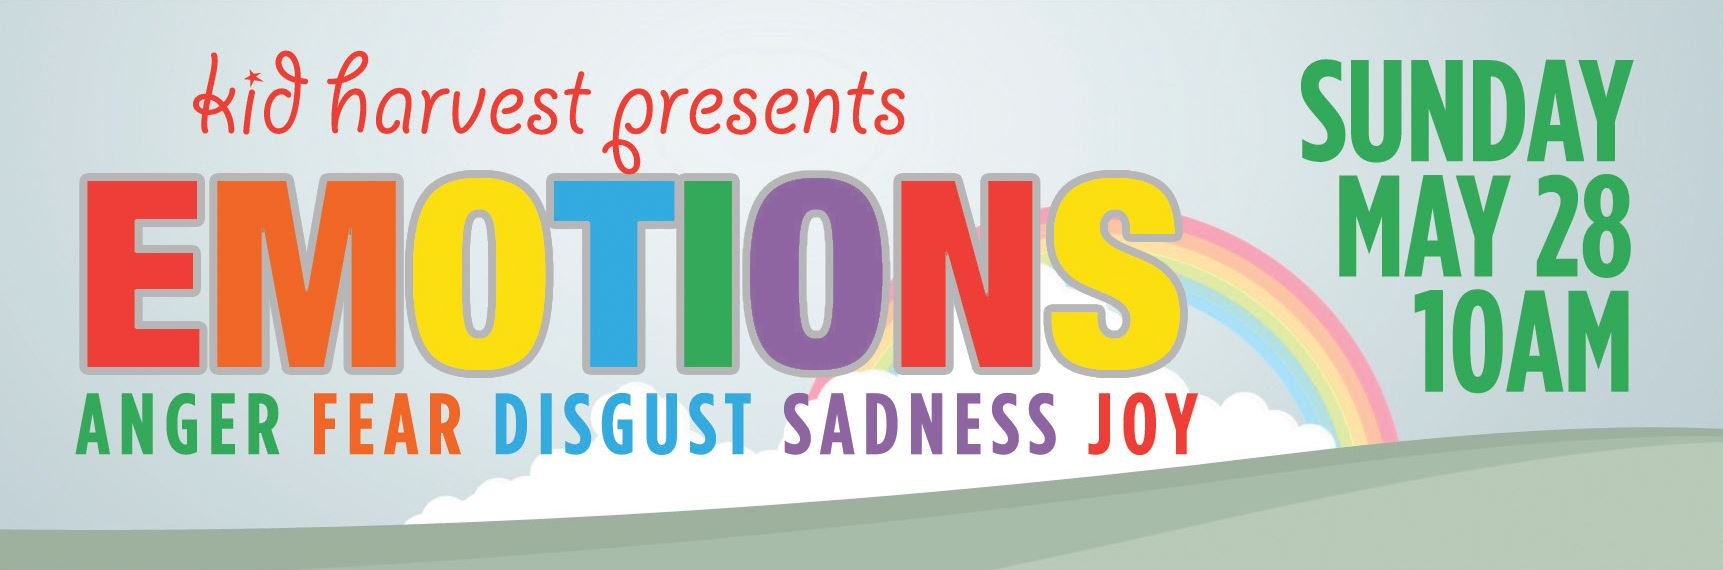 Kid Harvest Presents Emotions - Anger, Fear, Disgust, Sadness, Joy | Sunday, May 28, 10am